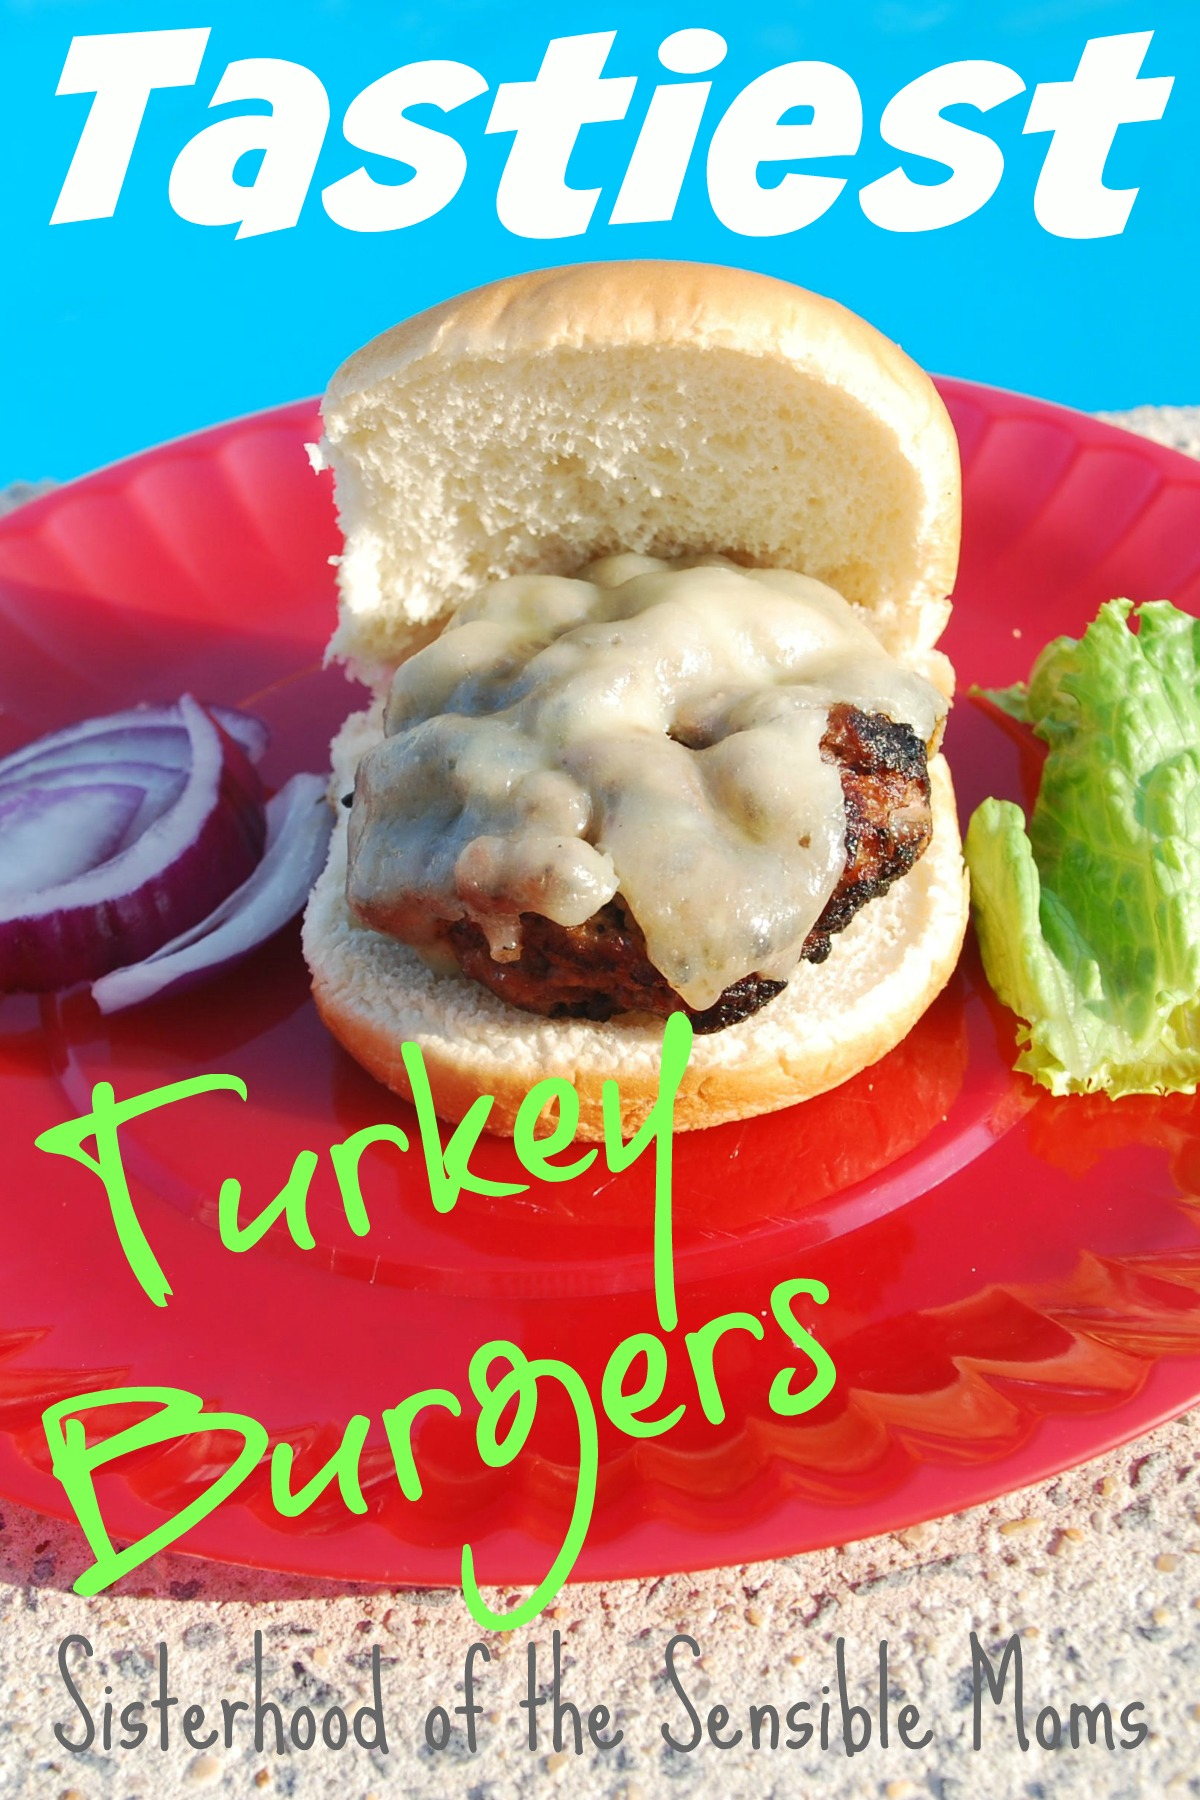 Need some summer meal ideas? Check out these tasty turkey burgers! Delicious AND healthy recipe! Great for a party! Sisterhood of the Sensible Moms